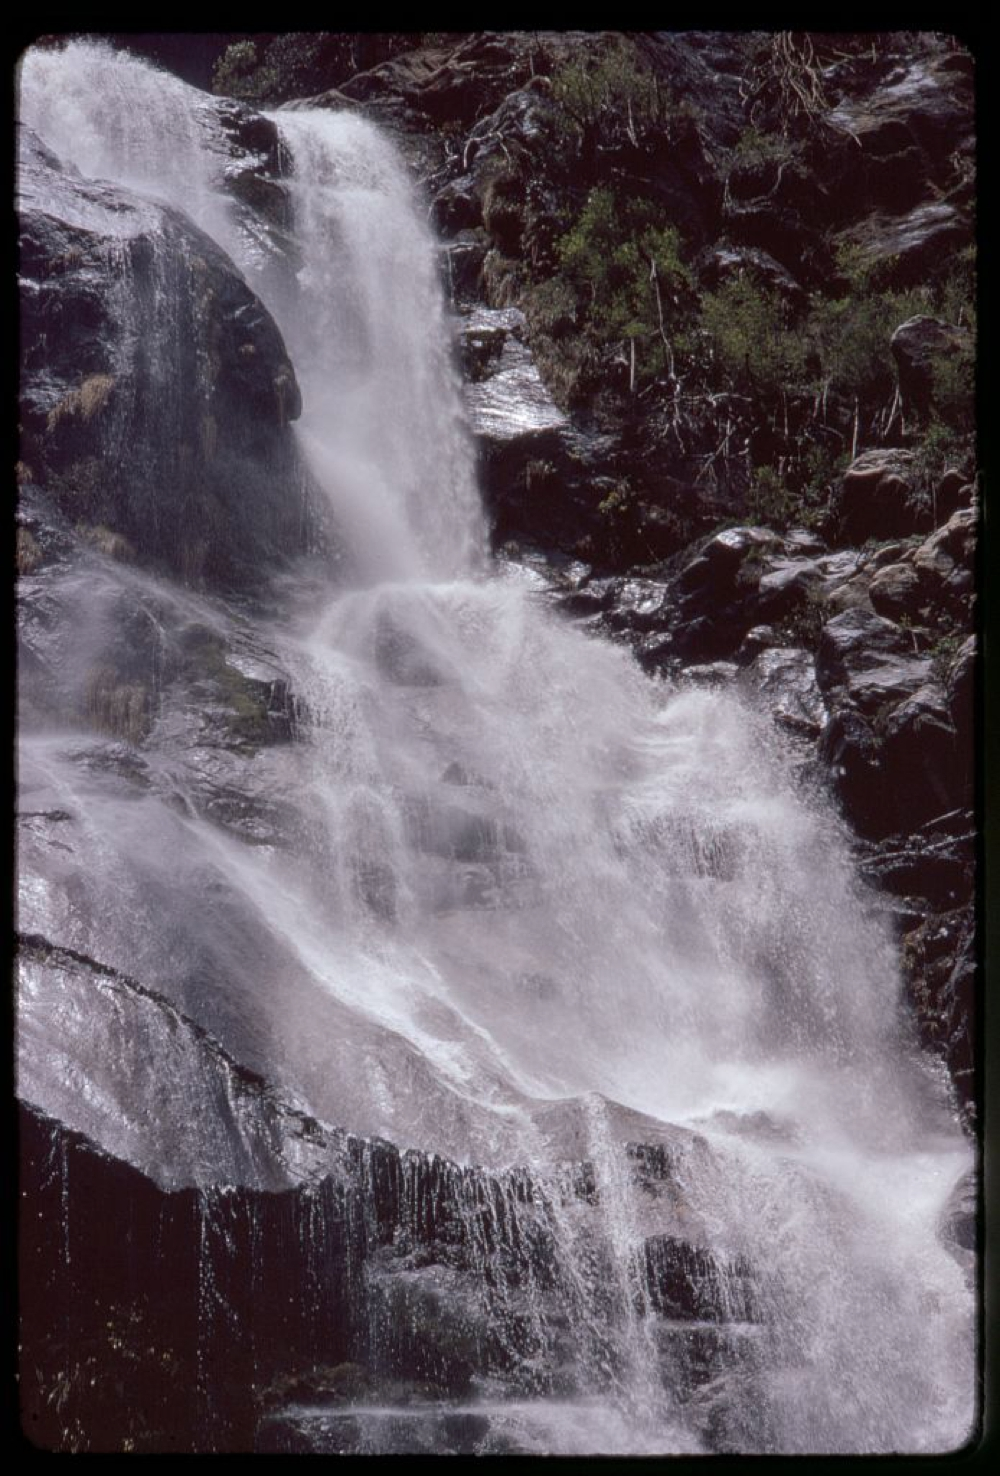 Waterfall, typical of Sikkim